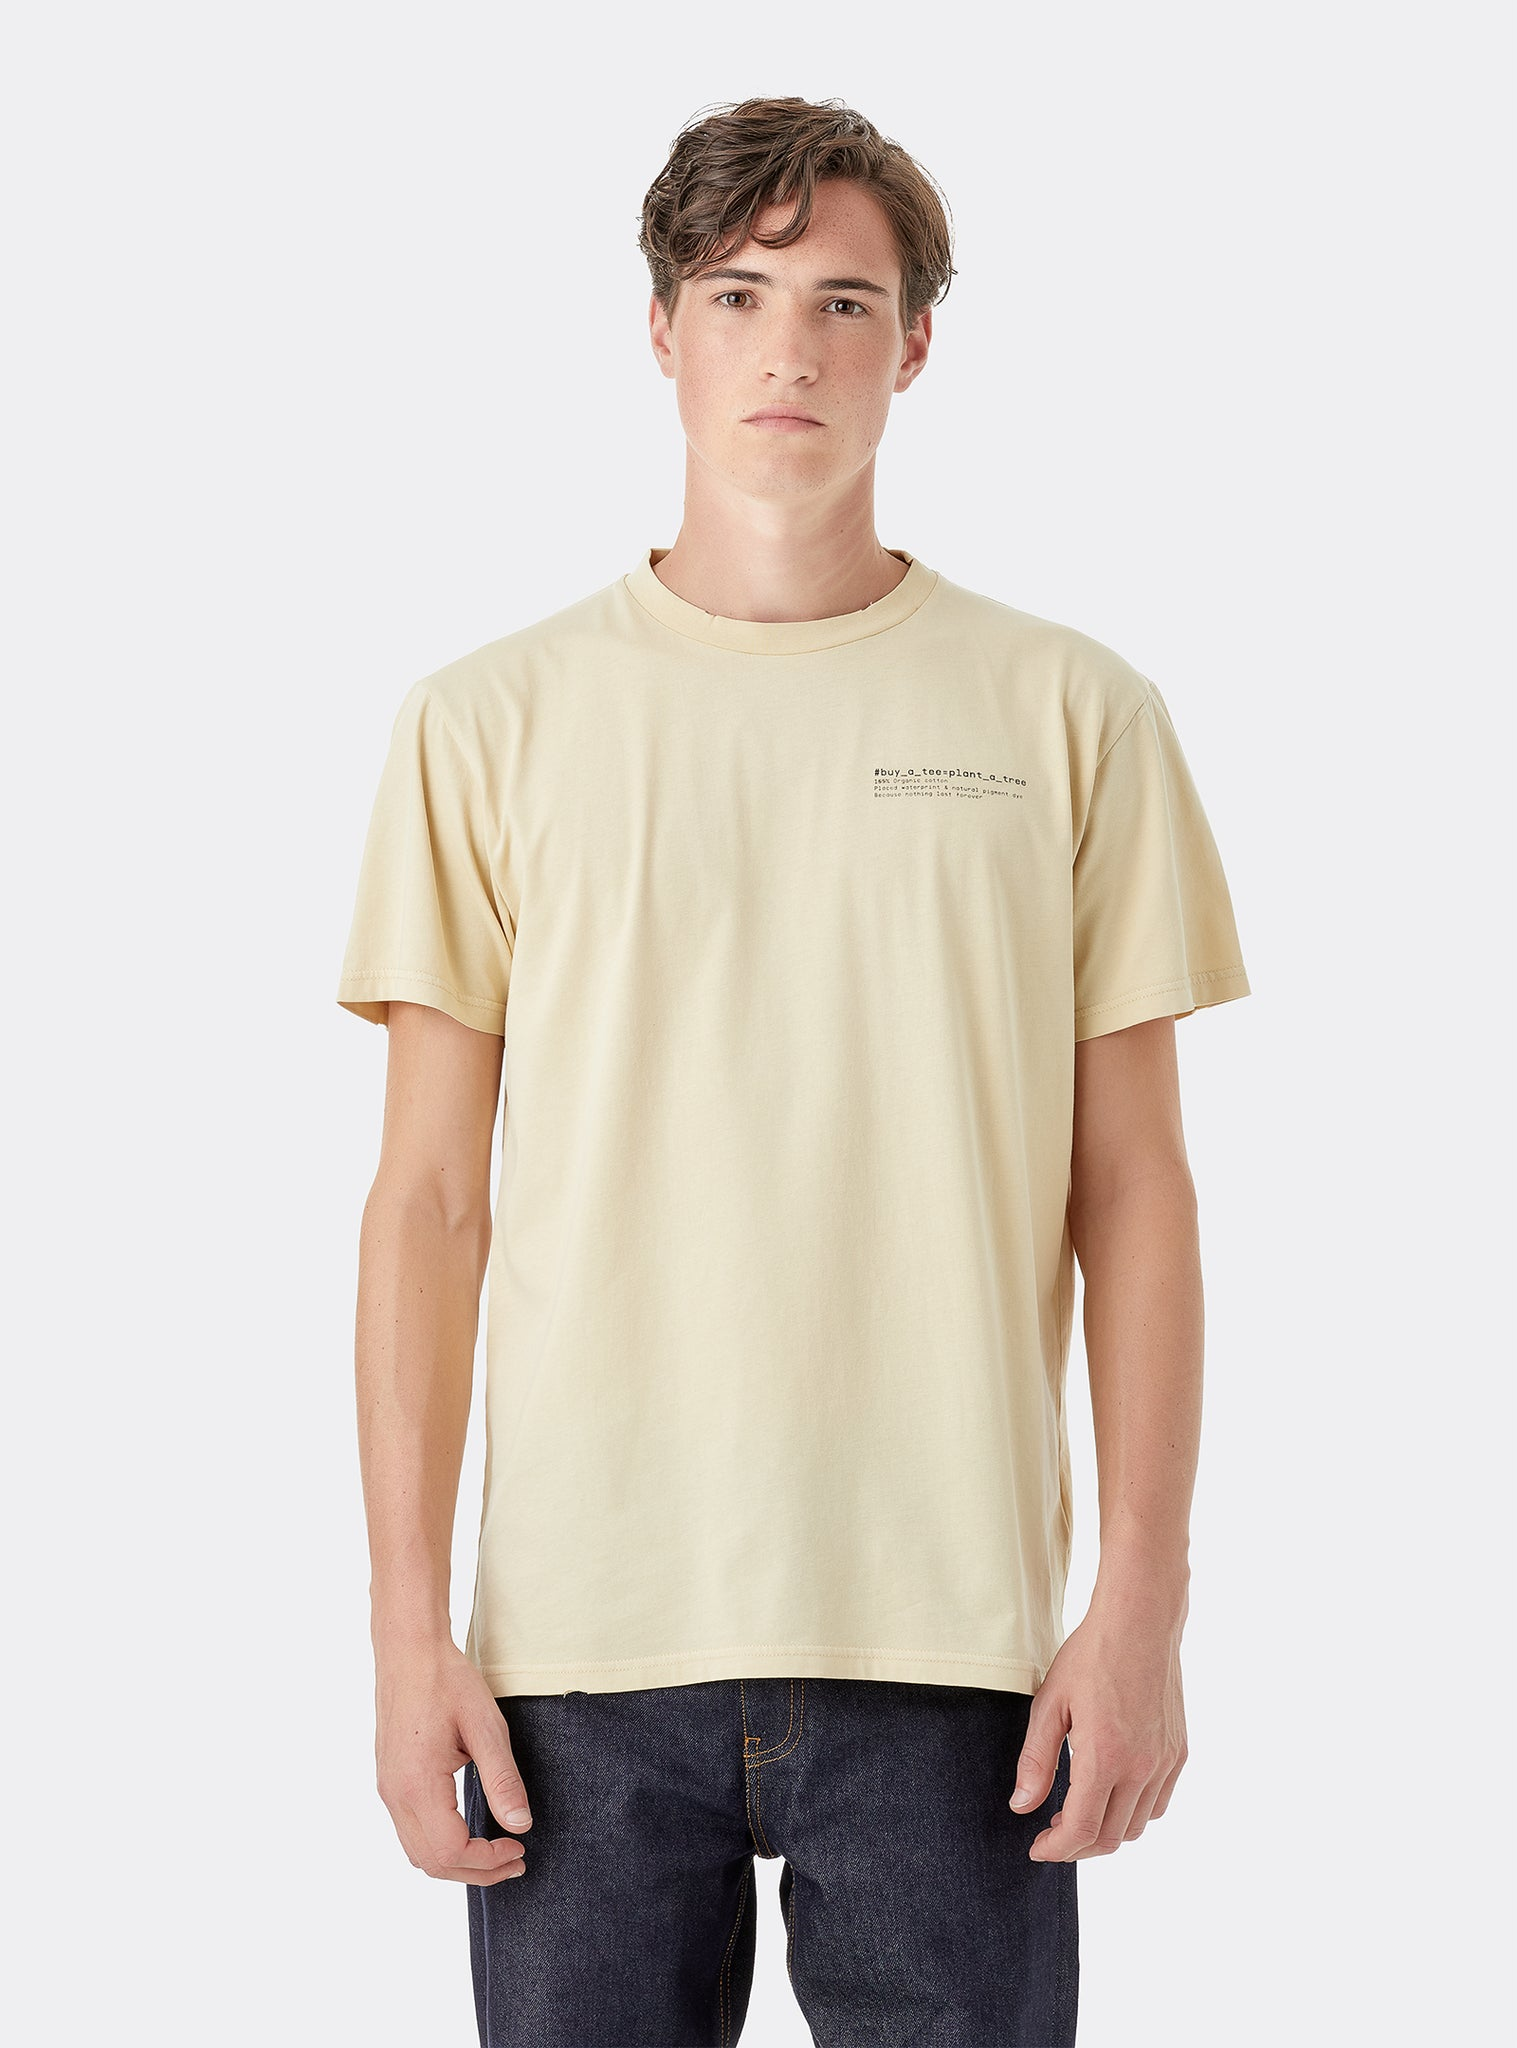 Expect Iii T-shirt Manches Courtes Beige